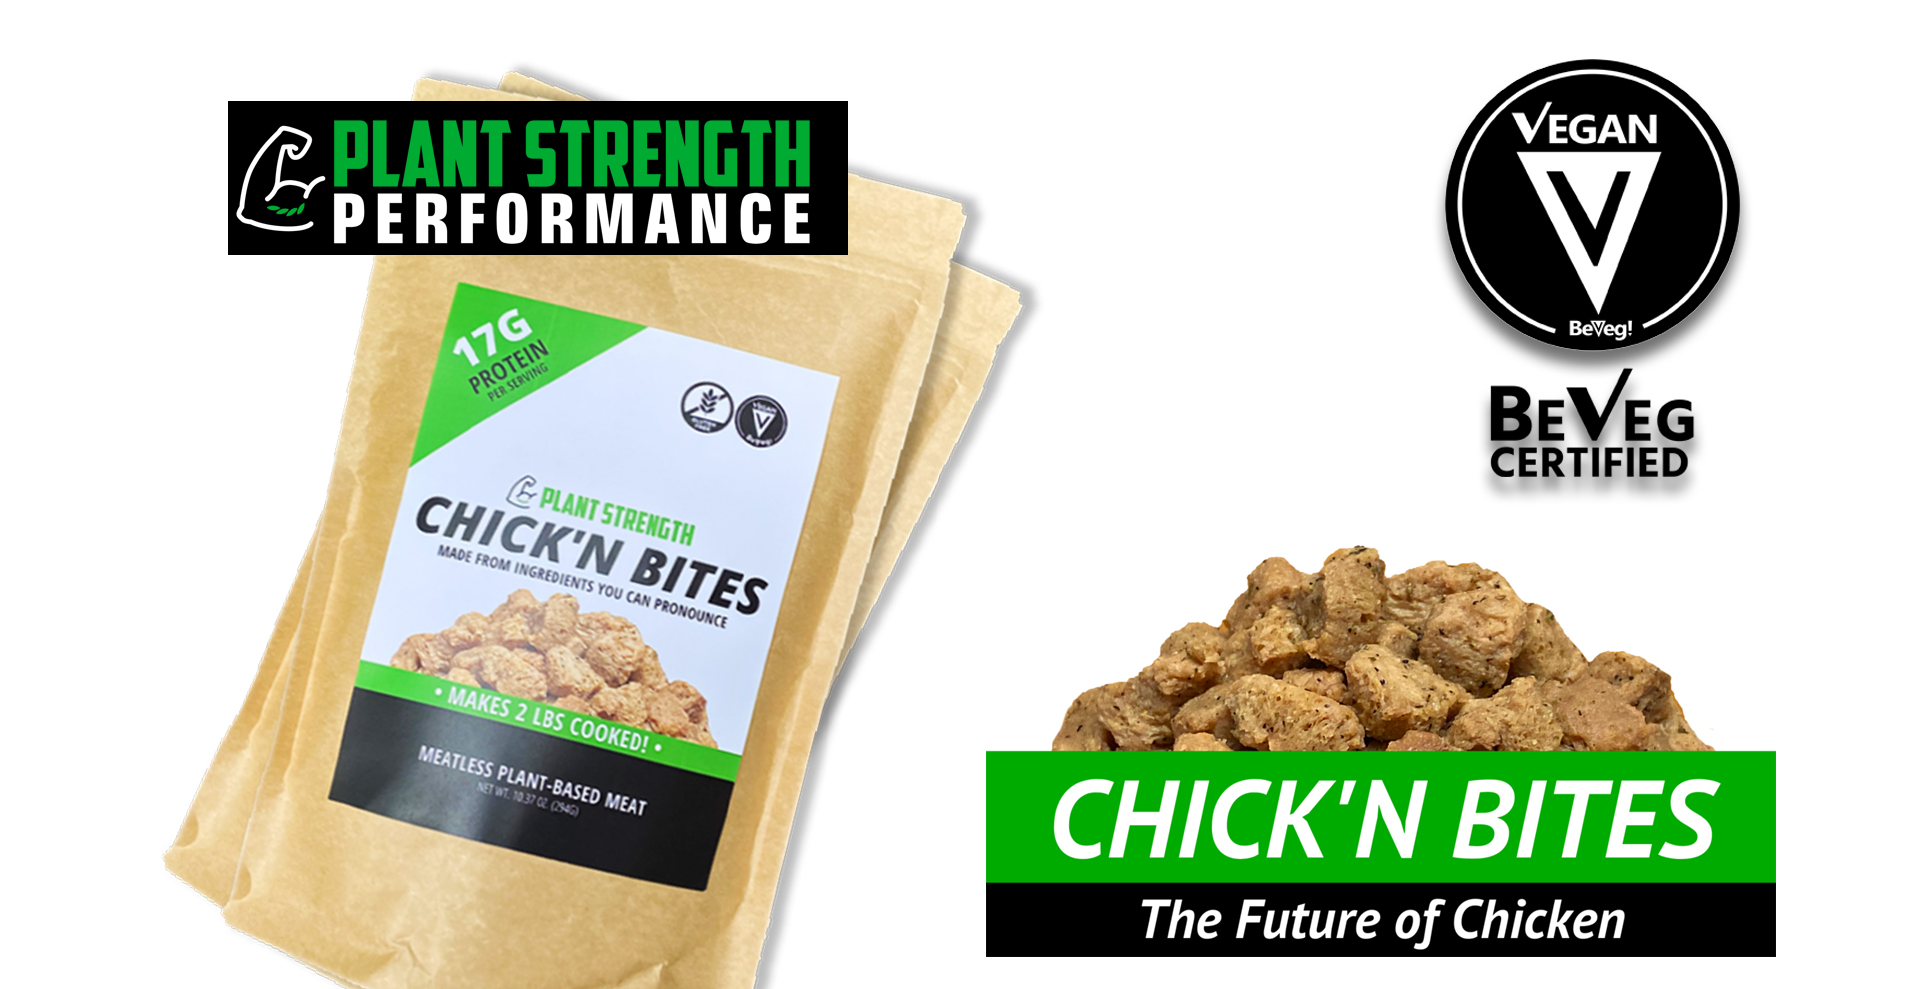 JANE UNCHAINED NEWS: Chick'n Bites Announces Vegan Certification with Beveg!